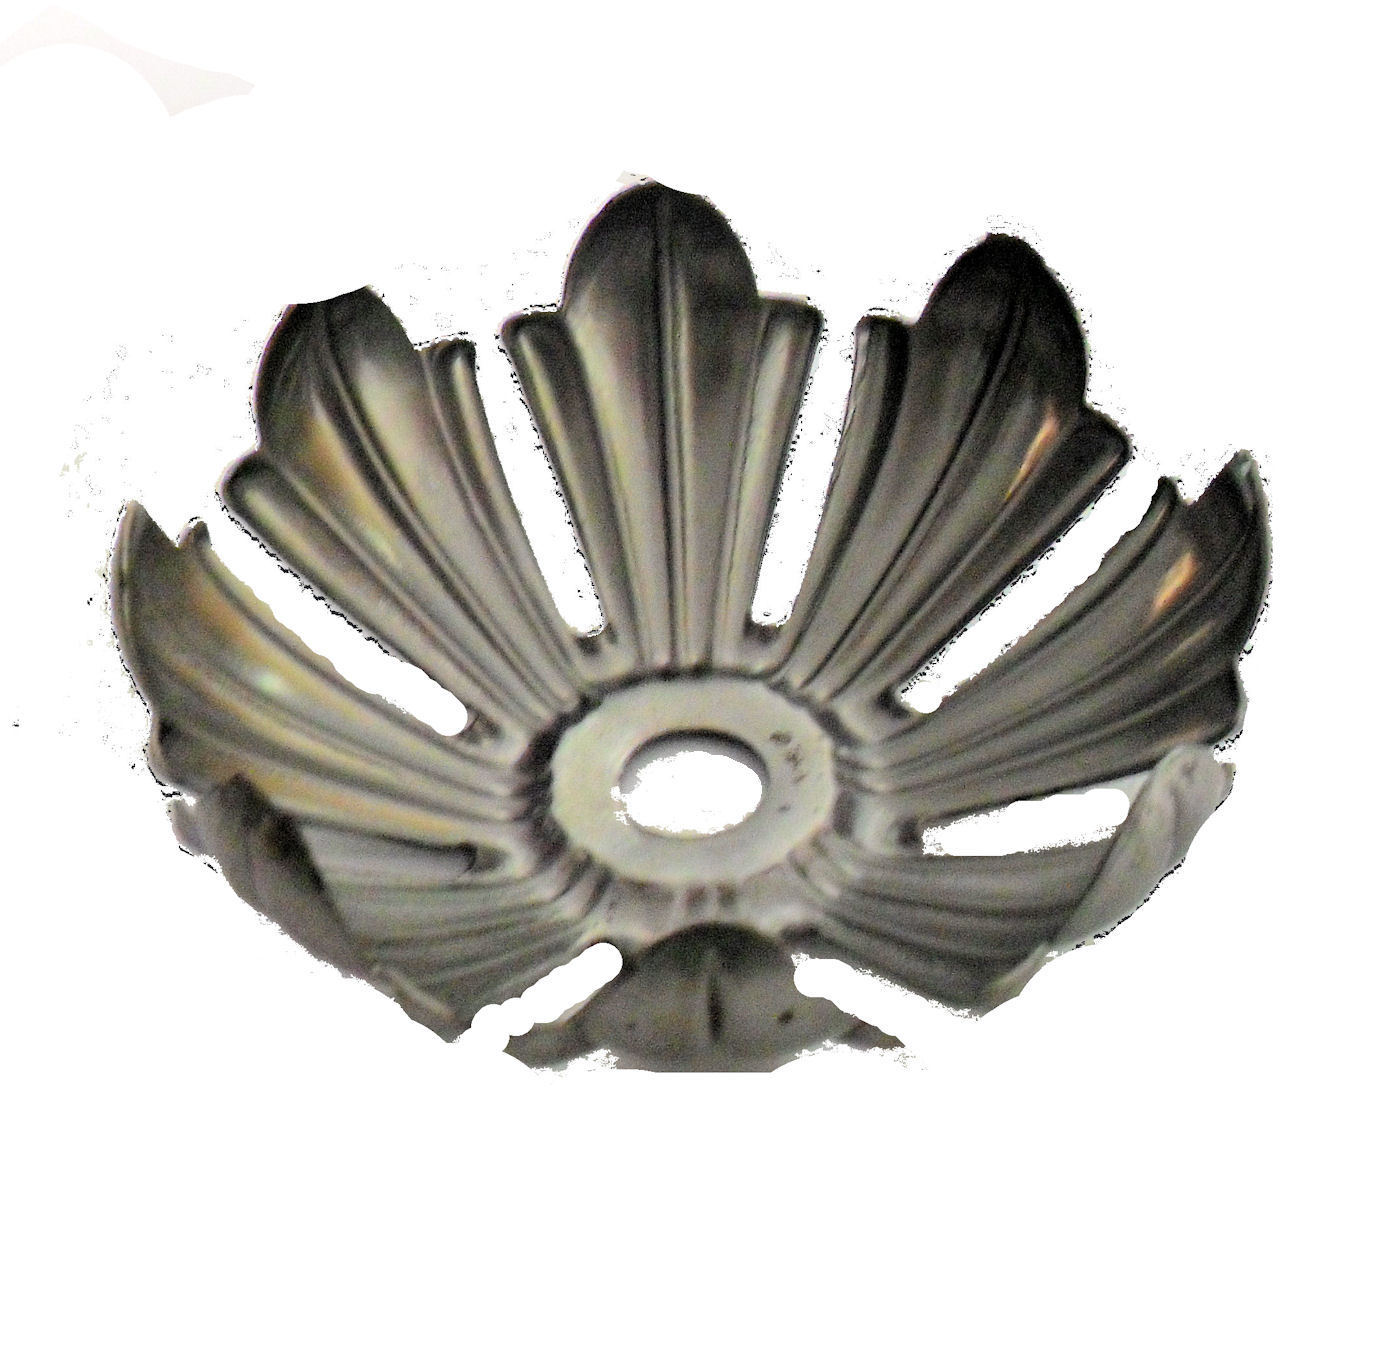 "2 5/8"" WIDE METAL LEAF"